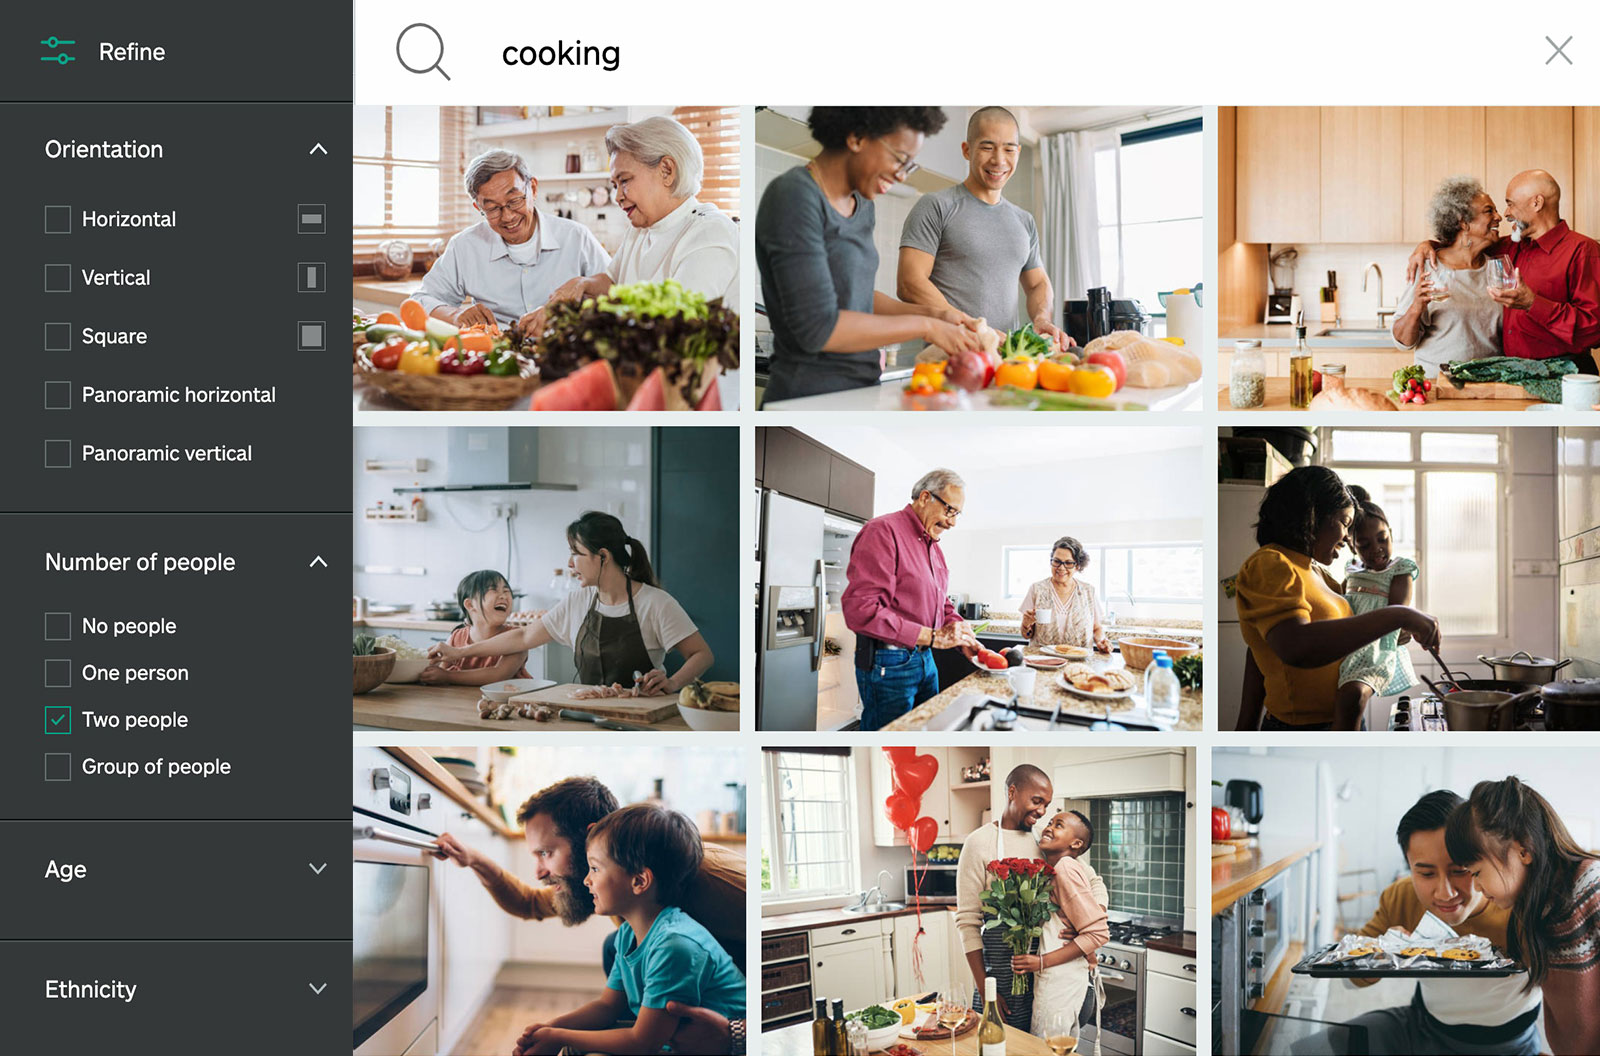 """iStock search results page for """"cooking"""" - showing various people cooking at home"""